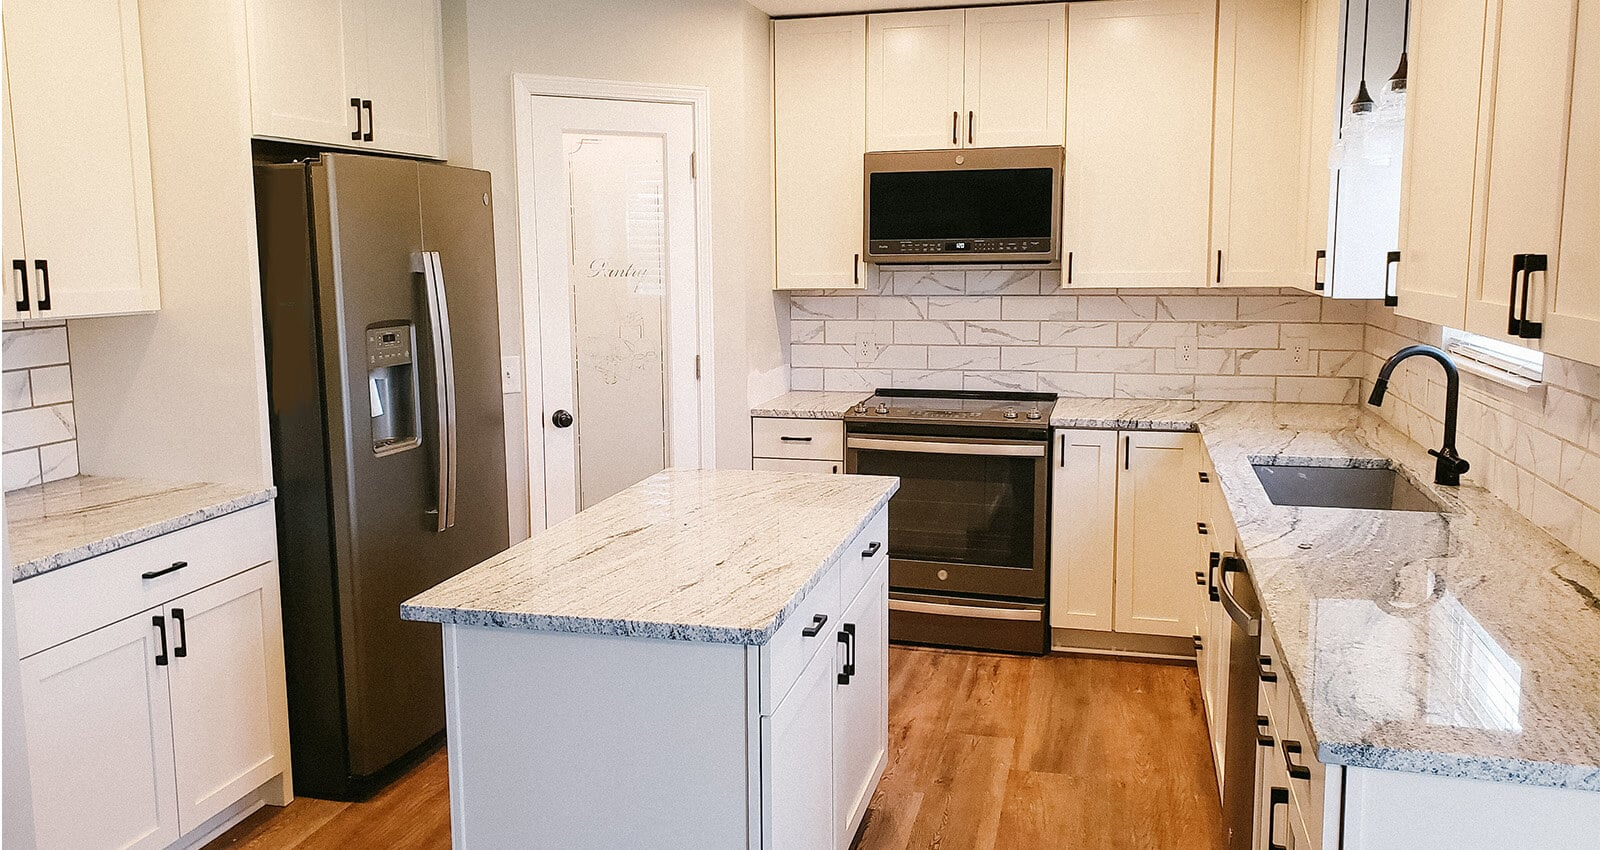 Indianapolis Kitchen Remodel - Plainfield, Indiana Kitchen Remodeling with white cabinets and granite countertops